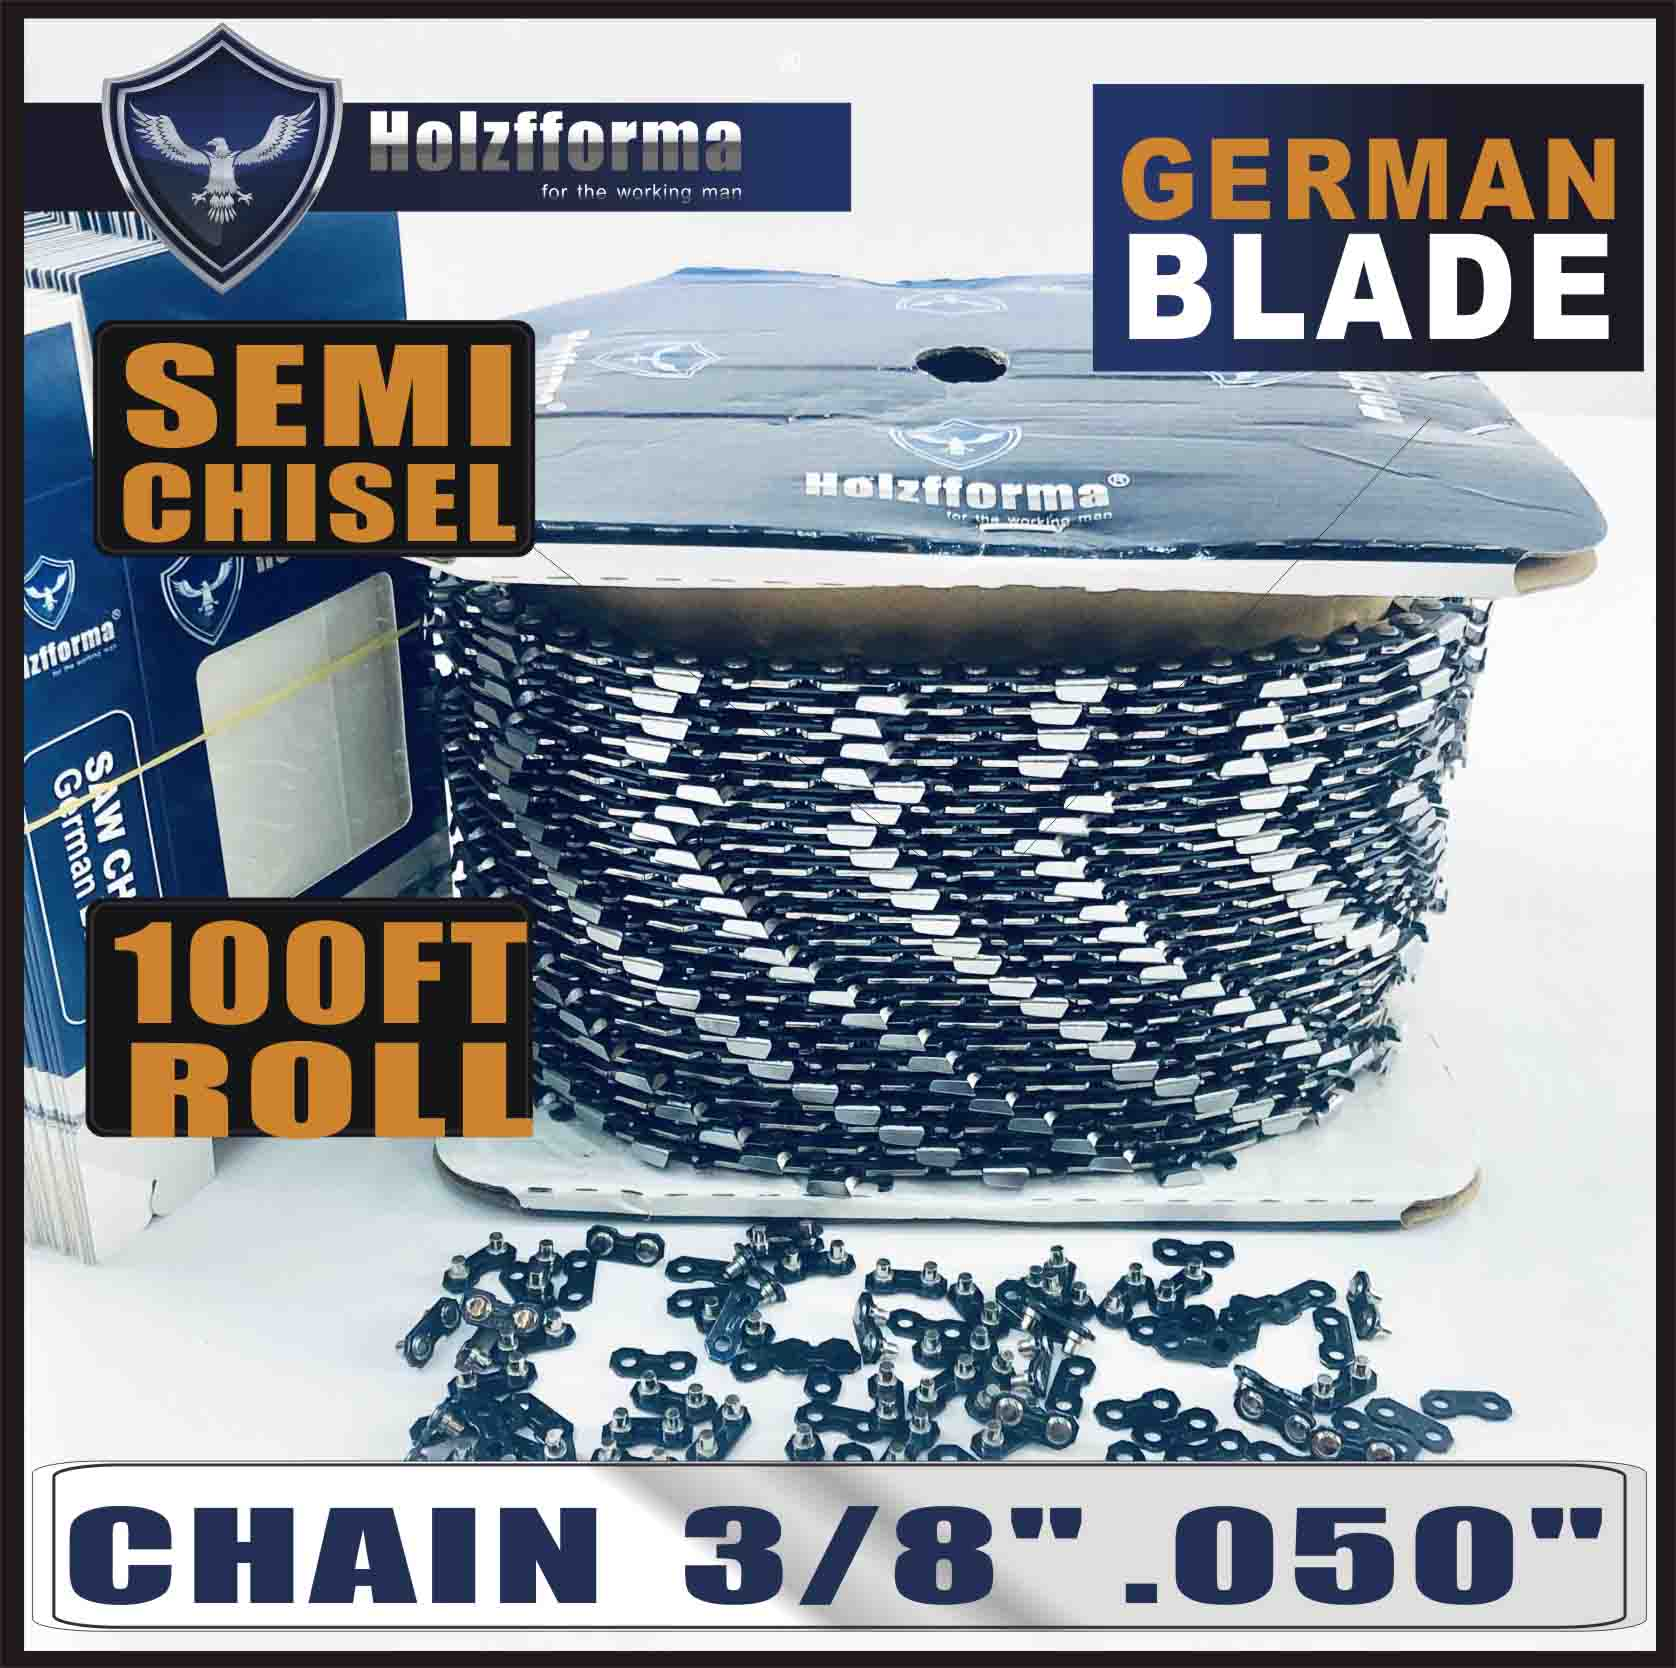 Holzfforma® 28inch Guide Bar /& Full Chisel Saw Chain Combo 3//8 .063 92DL